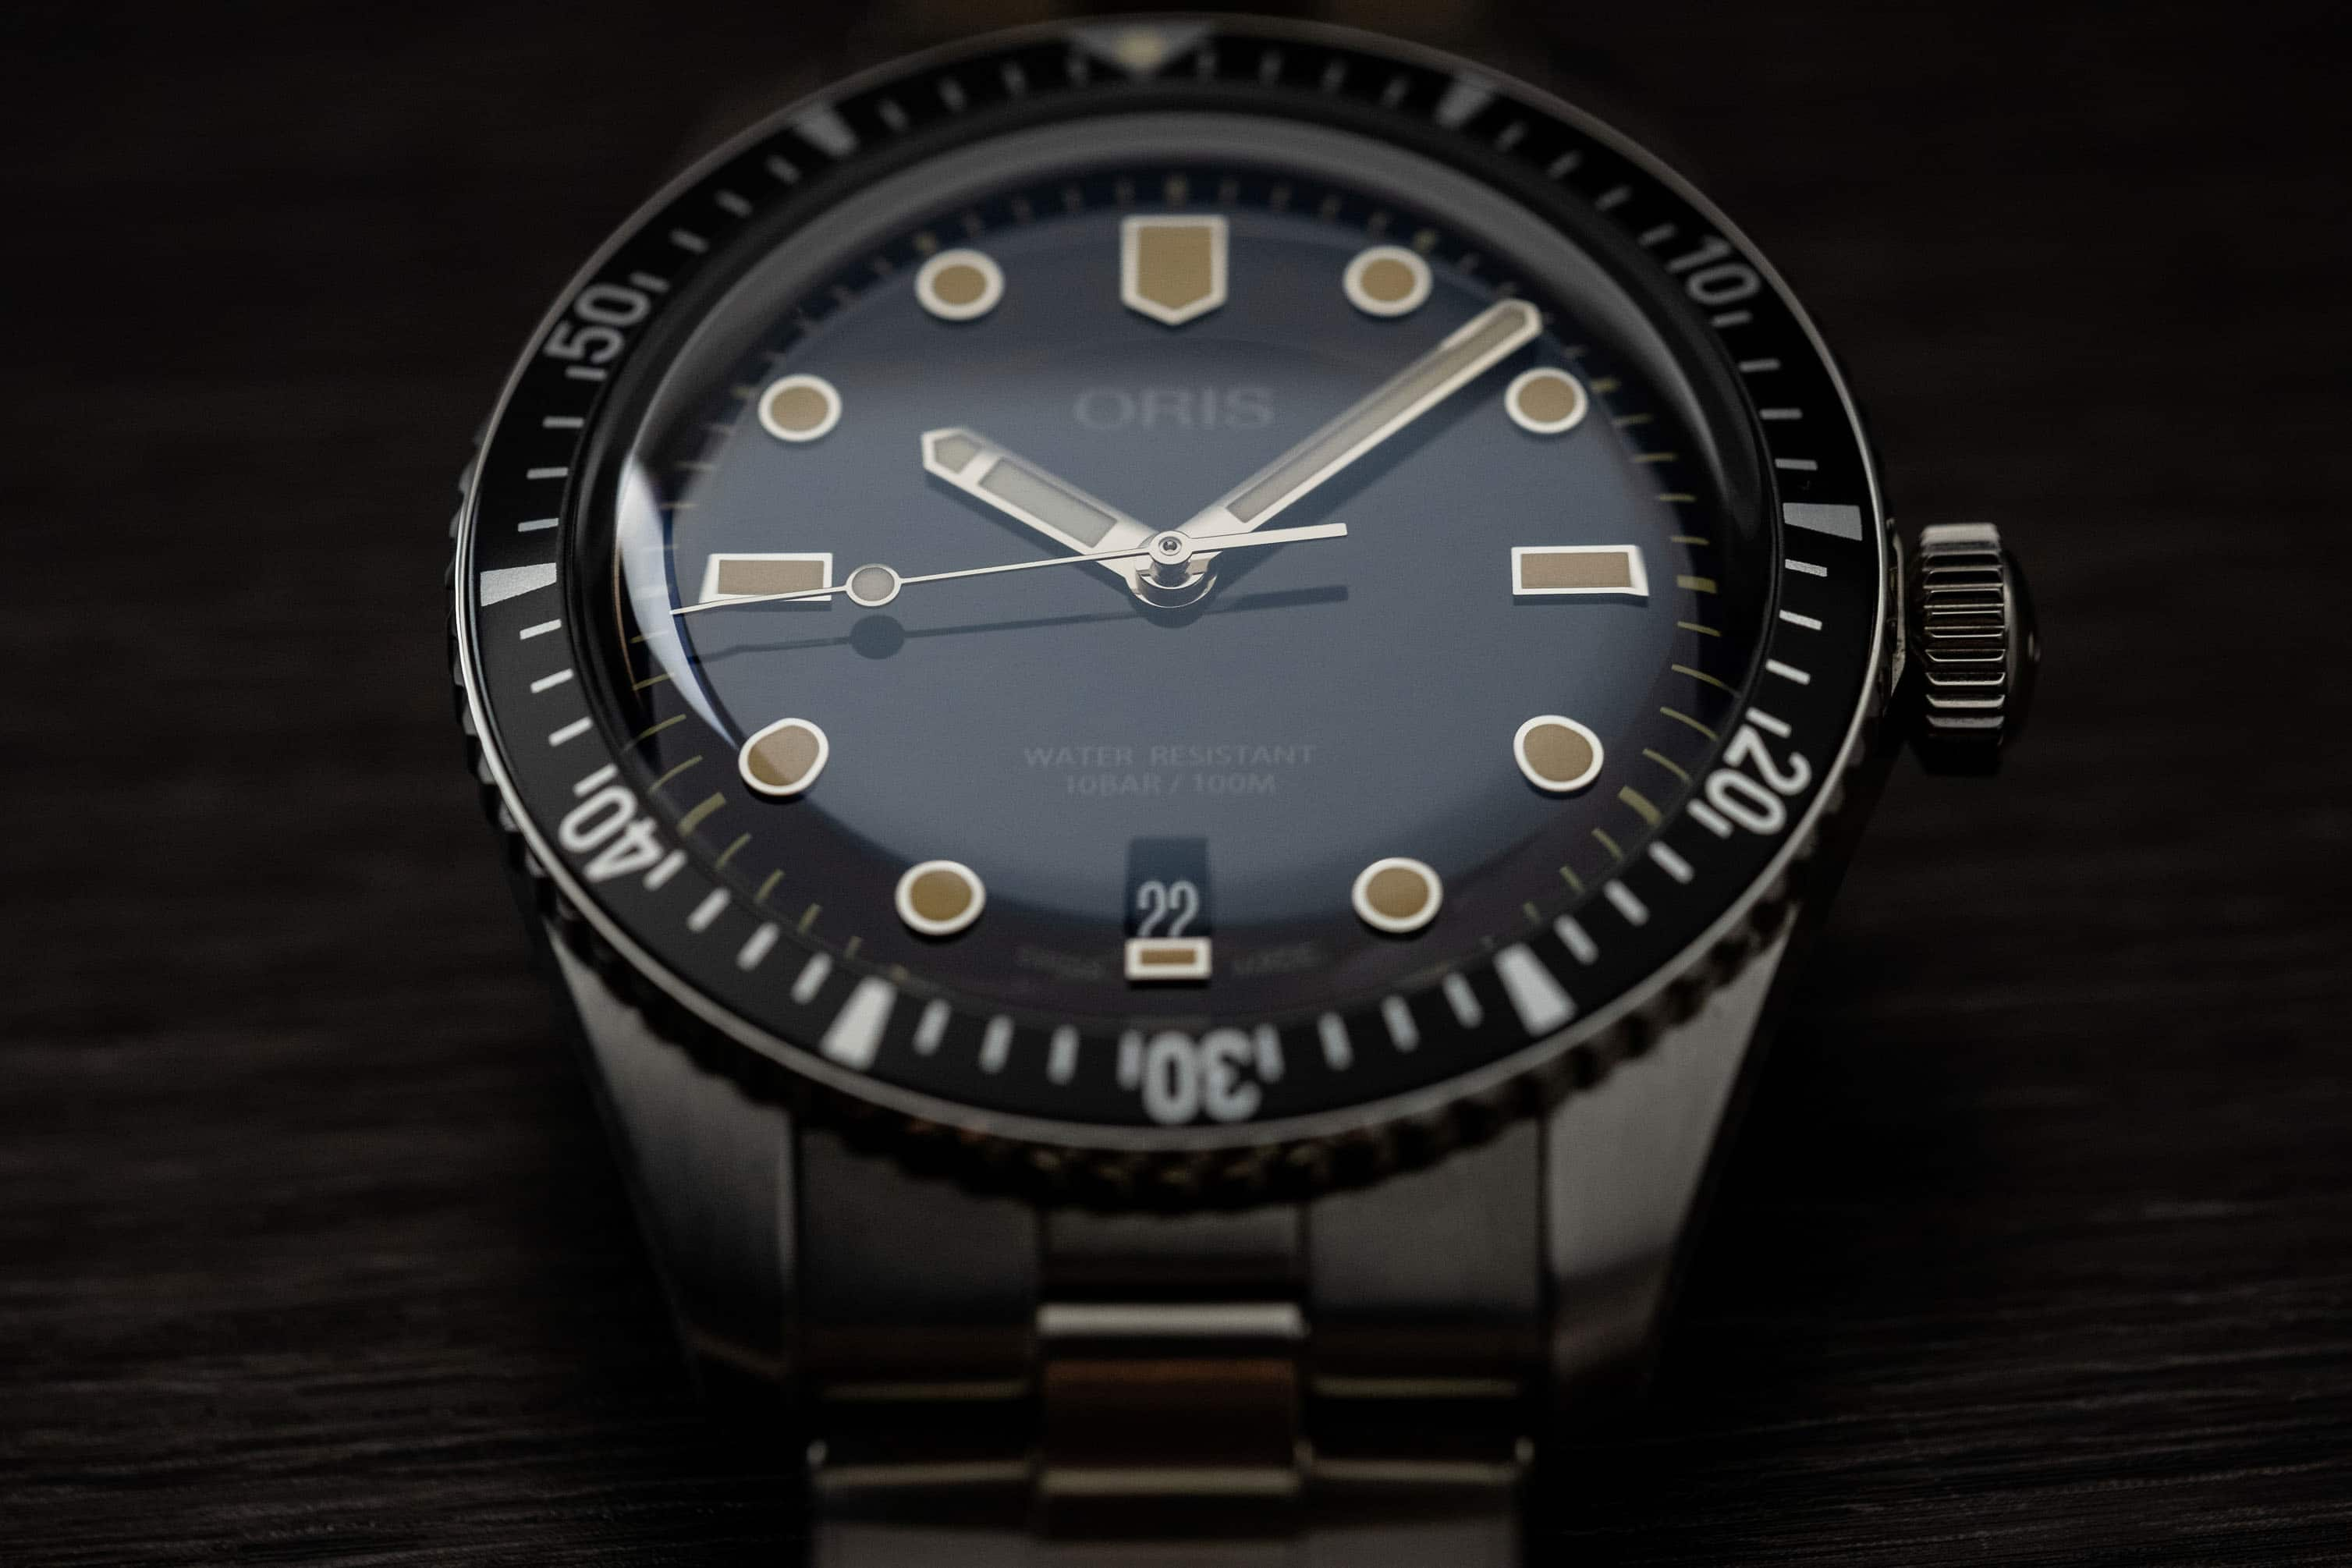 Oris Divers Sixty-Five Dial color-shifting illusion feature